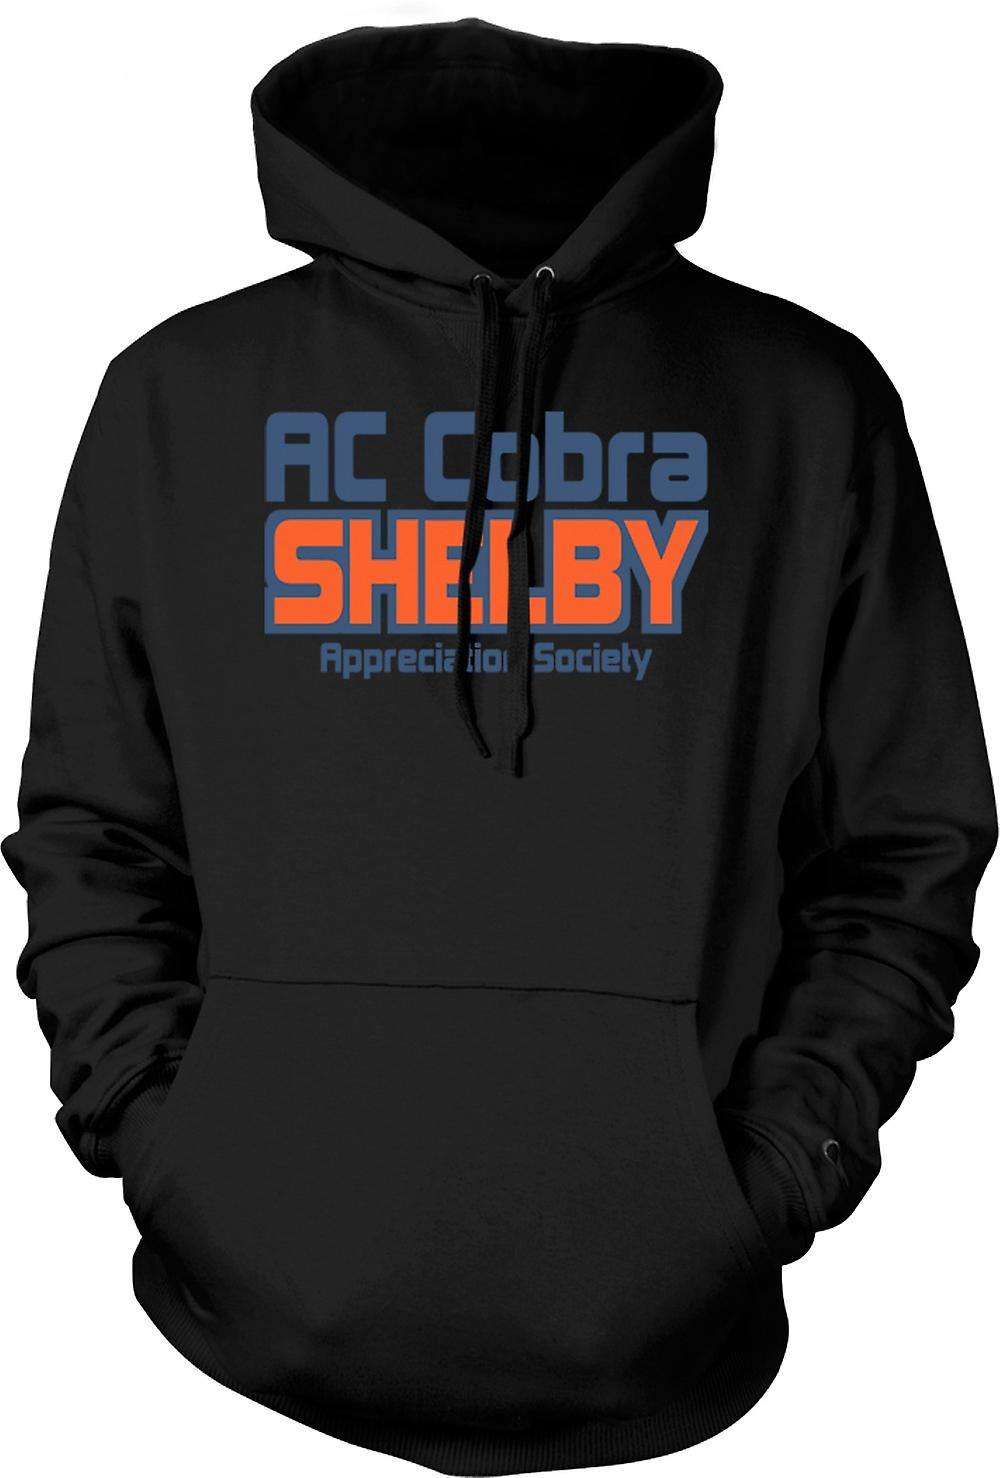 Mens Hoodie - AC Cobra Shelby Appreciation Society